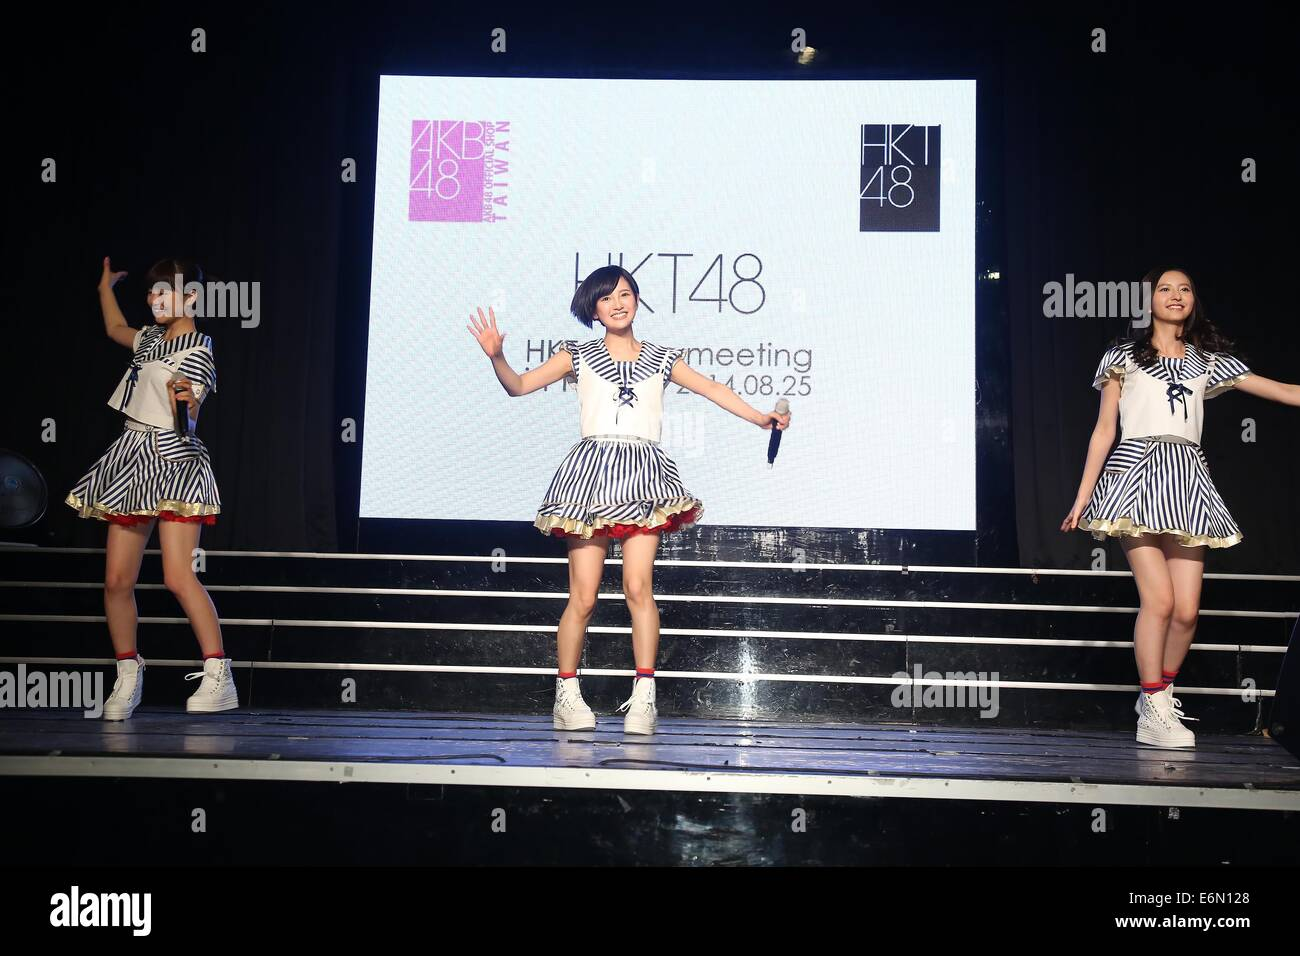 Hkt48 Stock Photos & Hkt48 Stock Images - Alamy